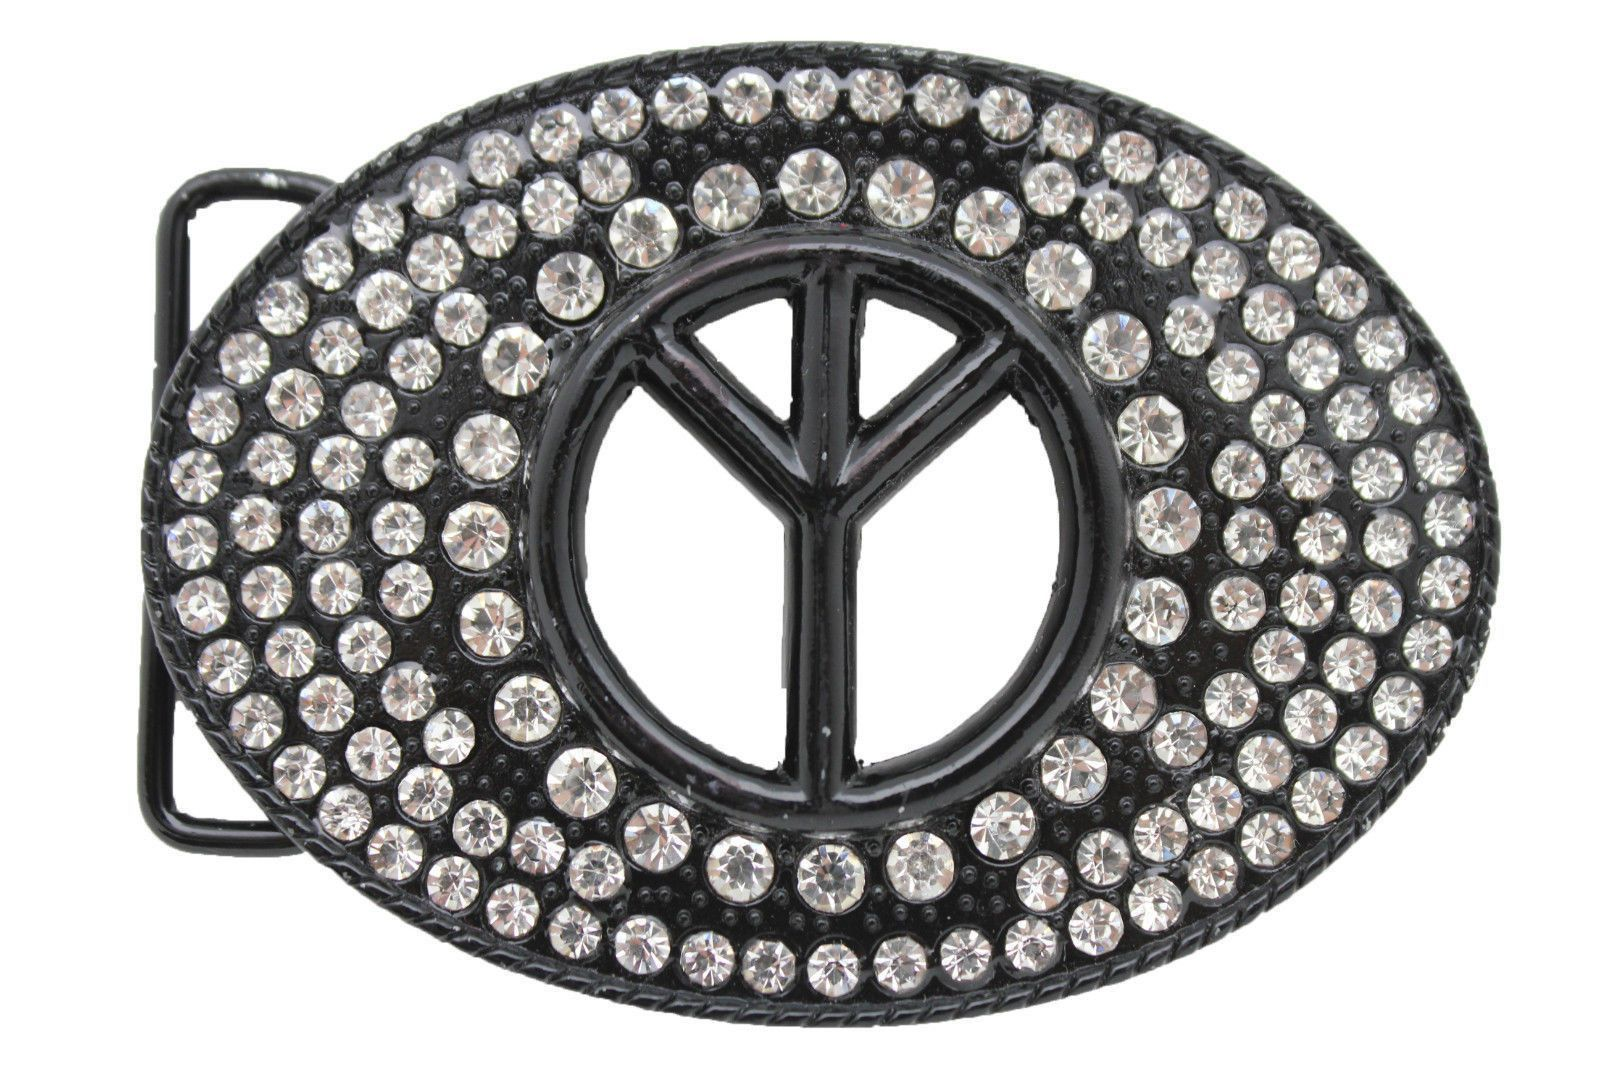 Silver Black Metal Hippie Peace Sign Freedom Oval Belt Buckle New Men Women Fashion Accessories Alwaystyle4you Chic Jewelry Unique Fashion Silver Rhinestone